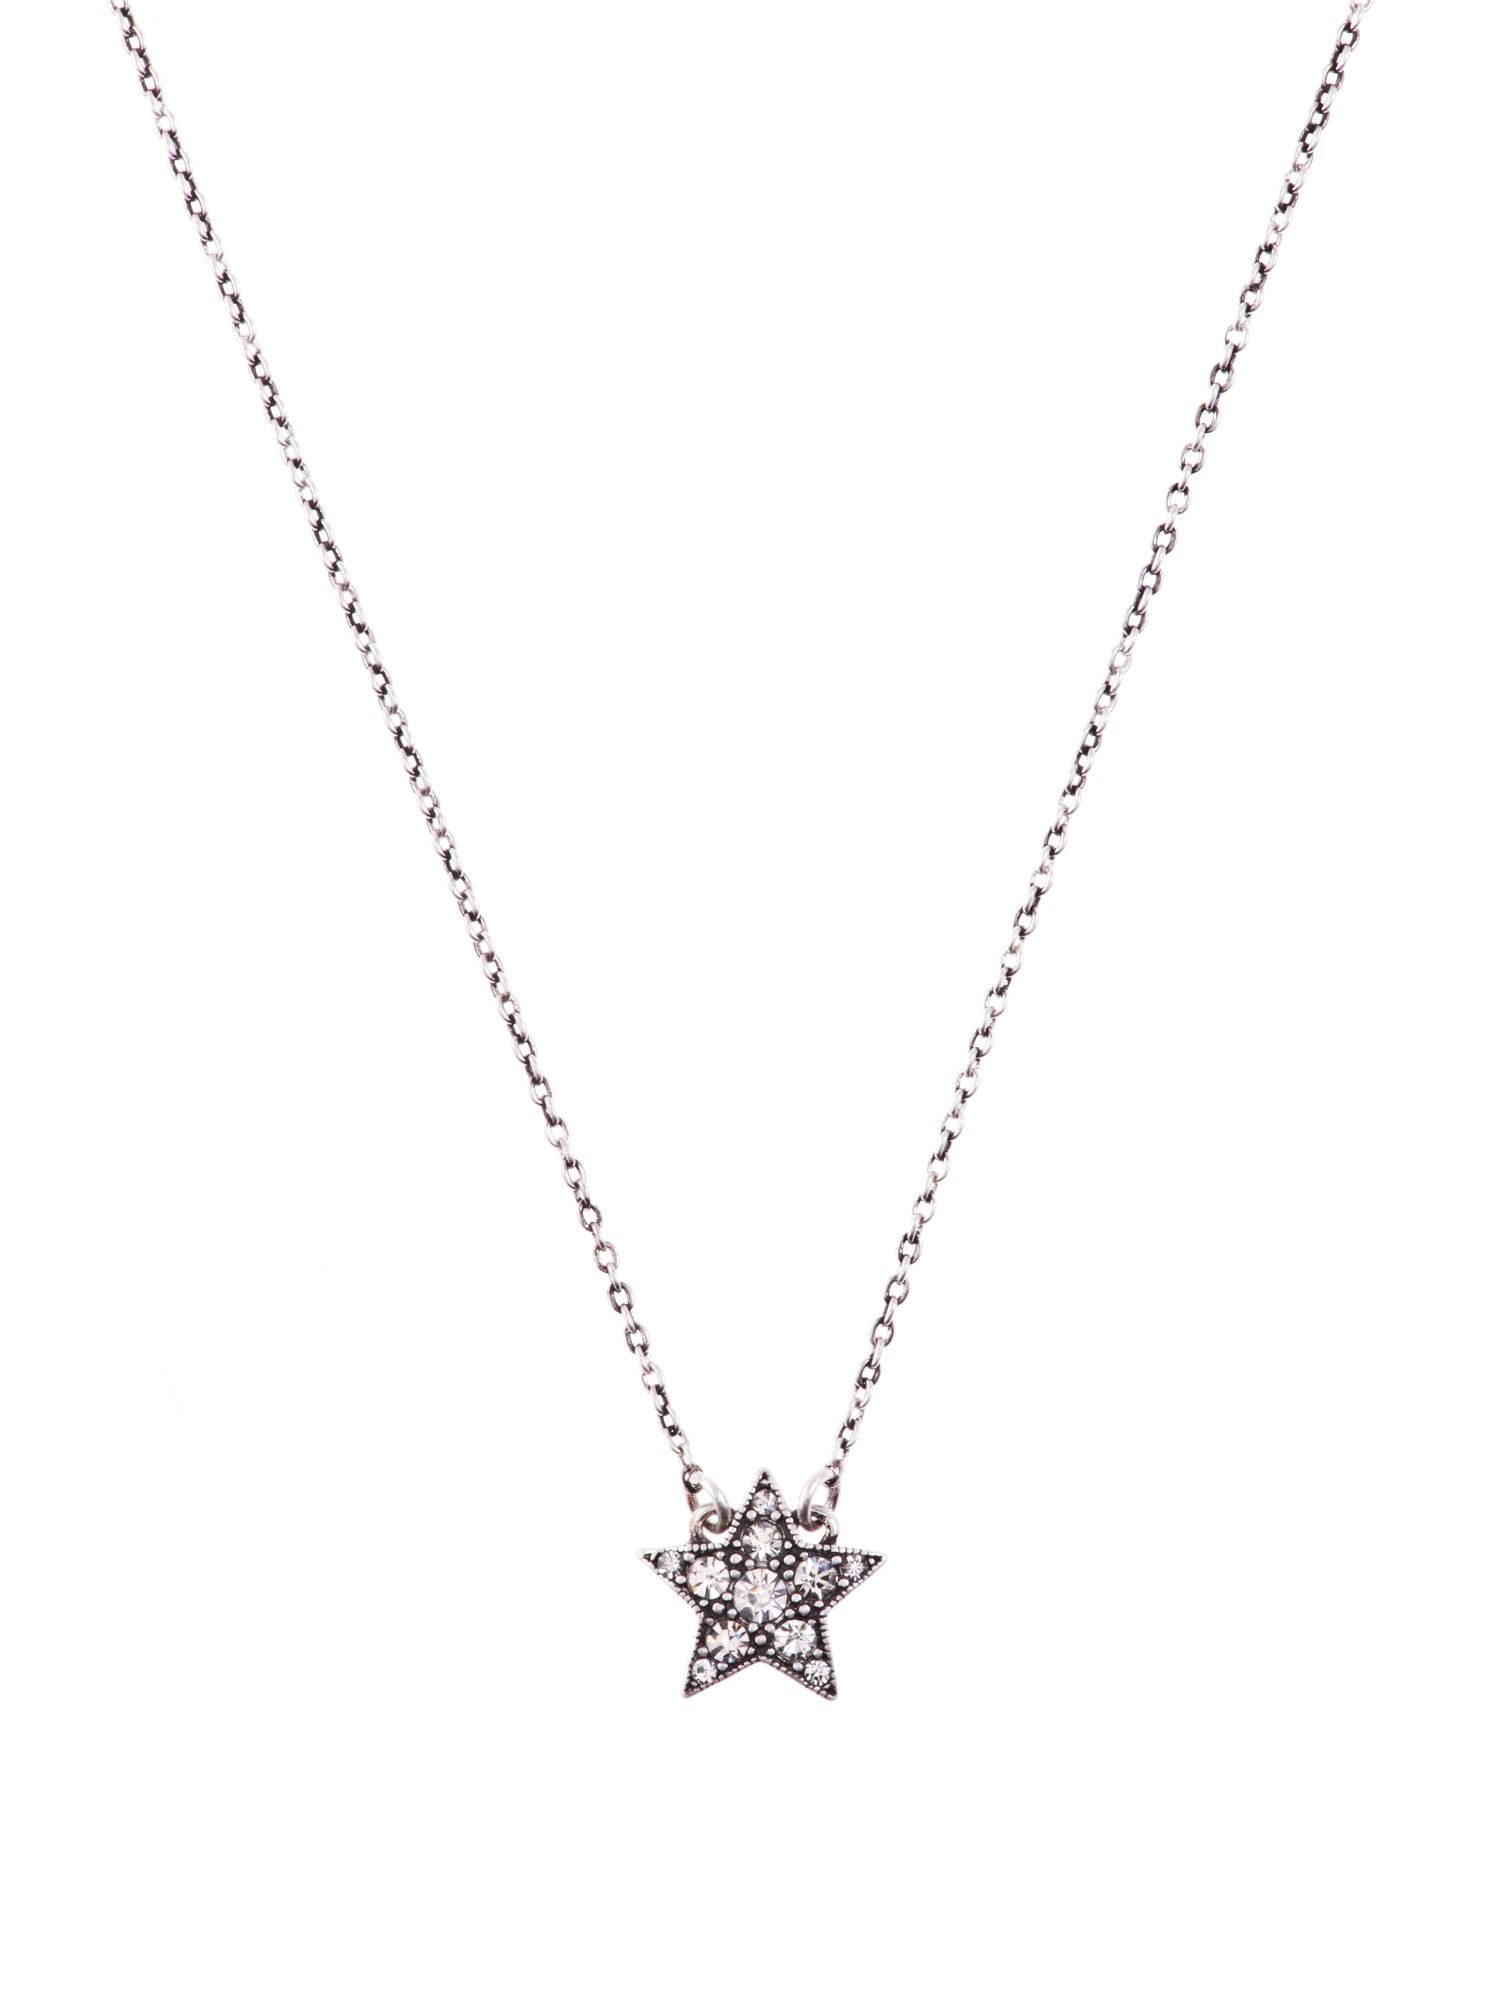 Cath Kidston Single pendant necklace star